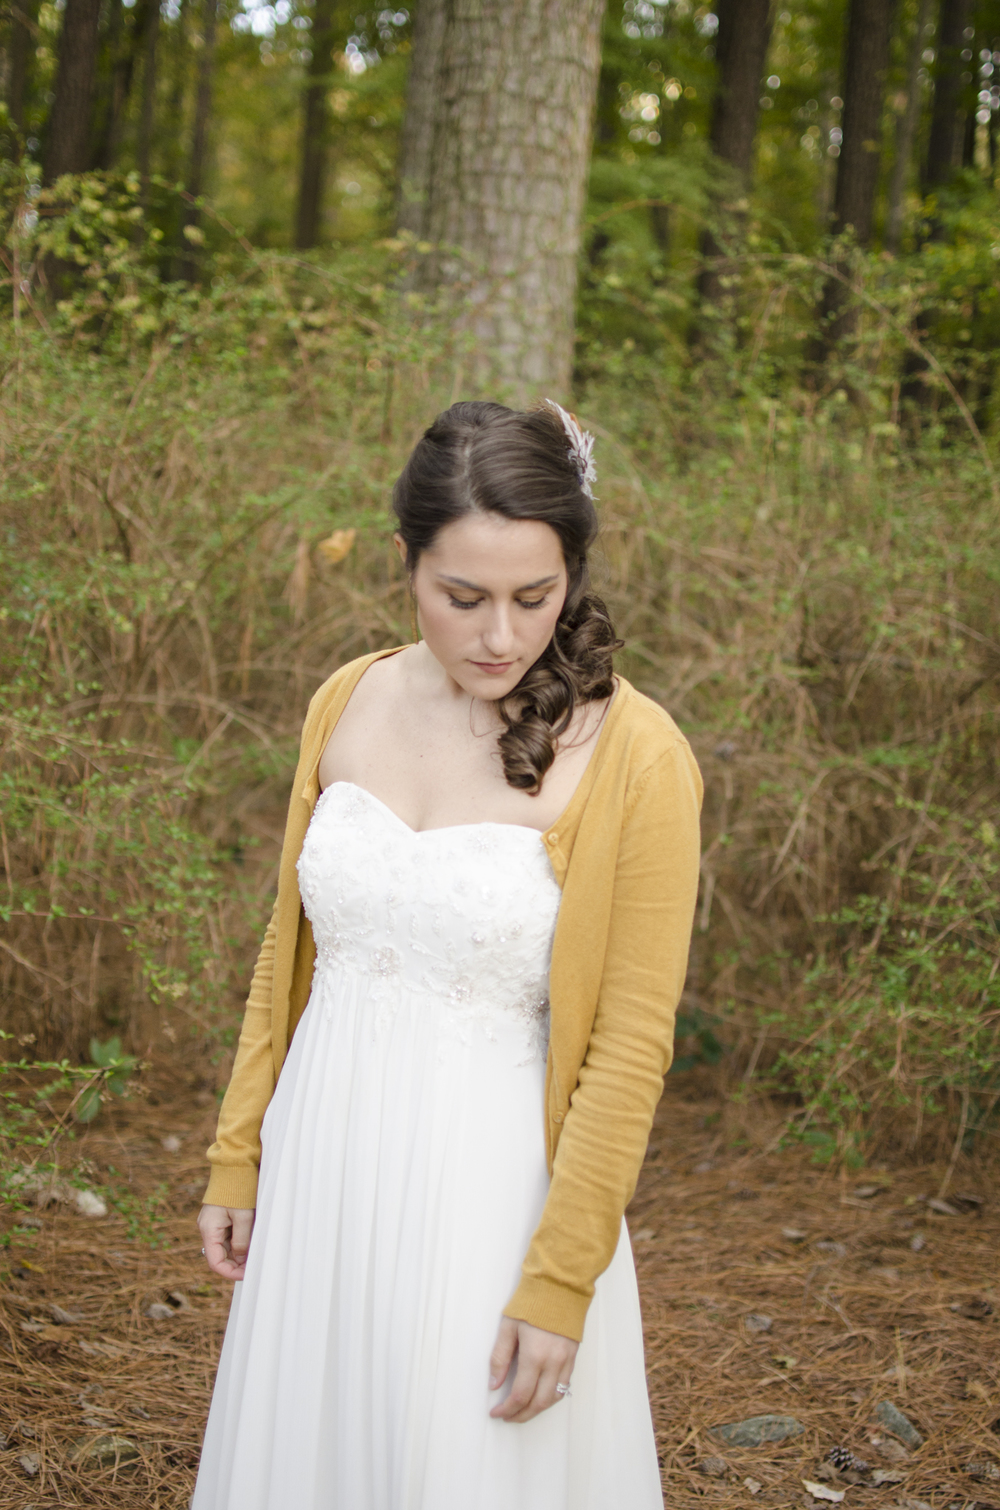 Bridal portraits in Red Wing Park, Virginia Beach